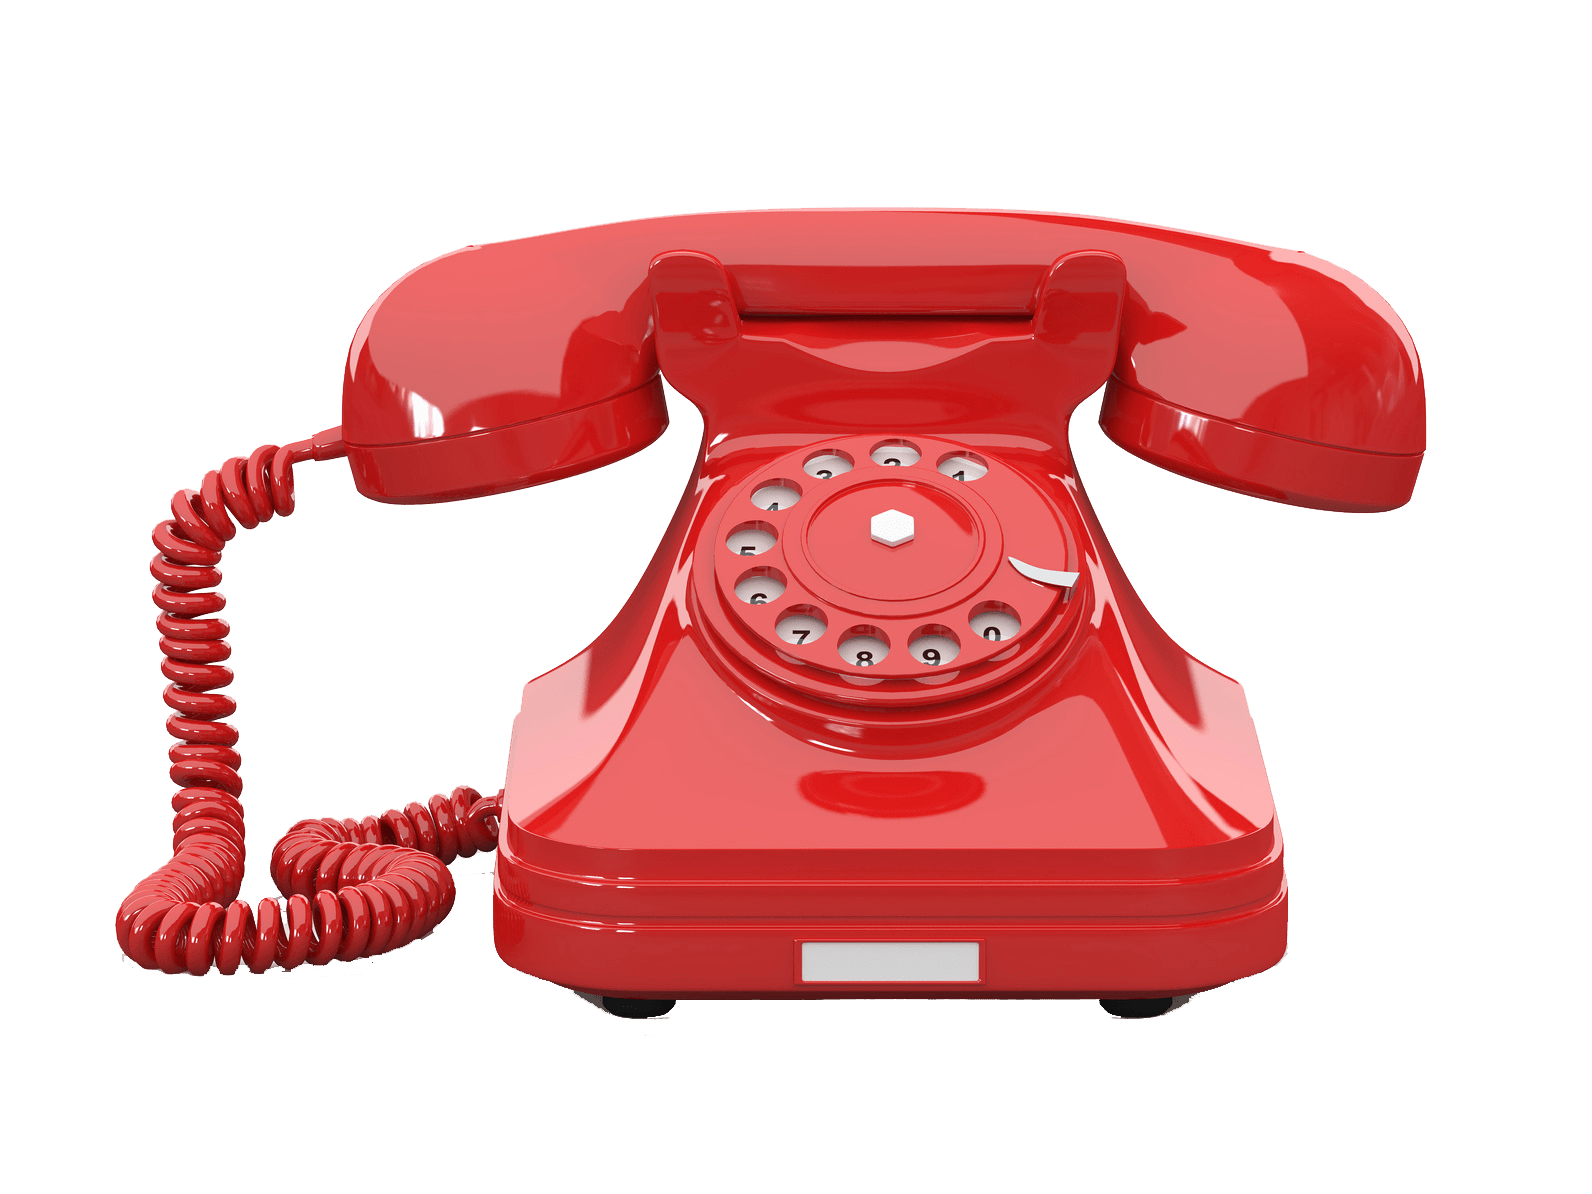 Telephone clipart corded phone. Red transparent png stickpng